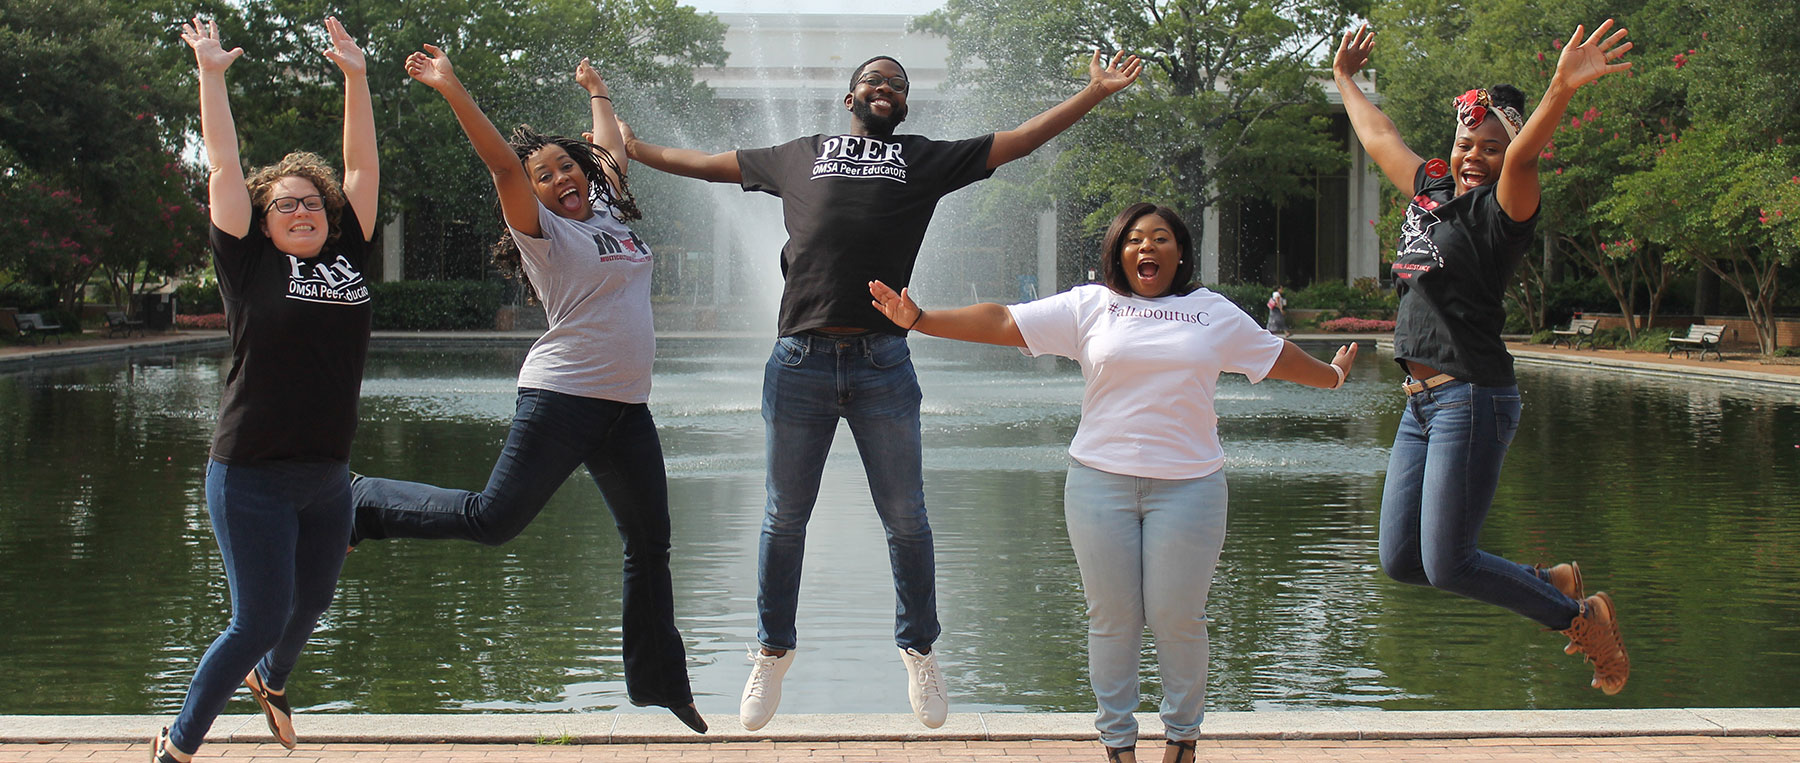 The OMSA team jumps for joy in front of the Thomas Cooper Library fountain.